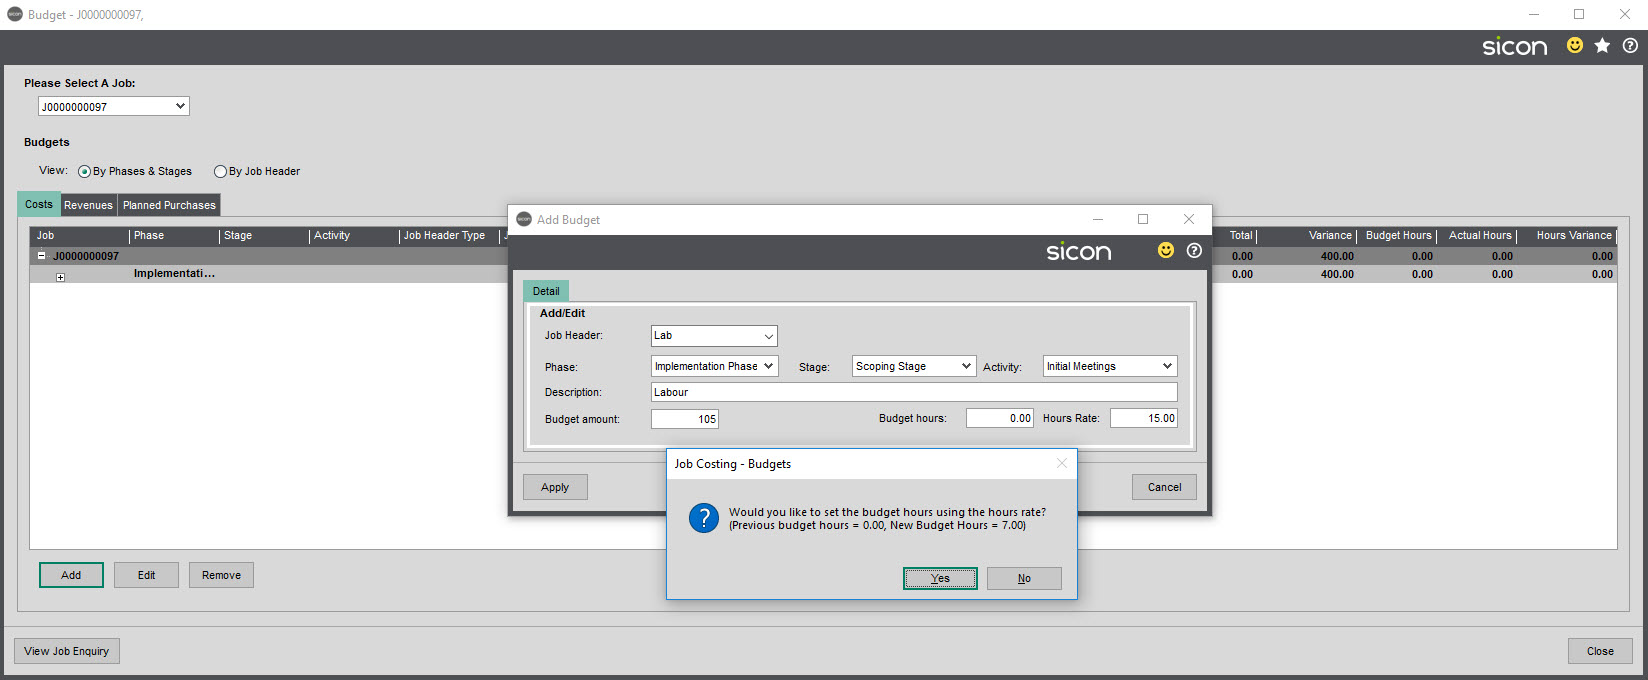 Sicon Job Costing Help and User Guide - Budgets Labour Prompt